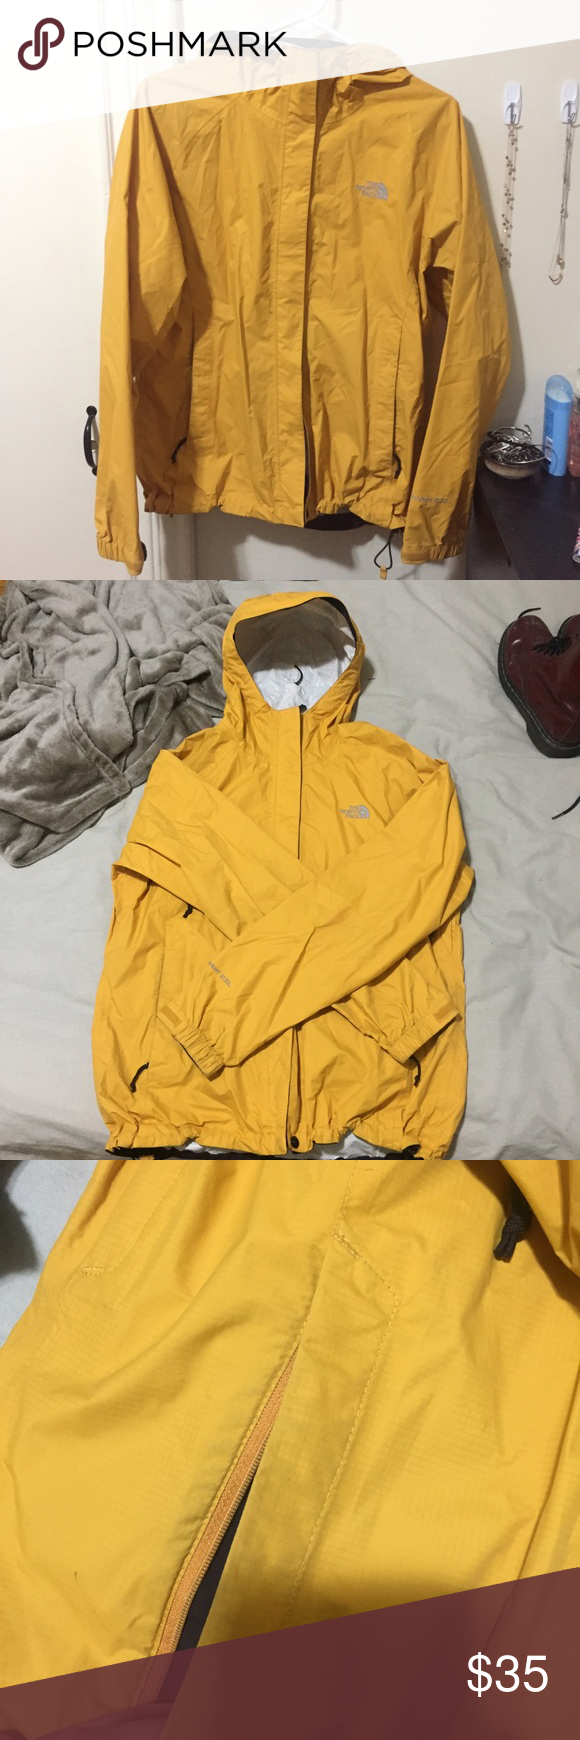 The North Face yellow rain jacket I think yellow rain jackets are so cute and classic. I'm normally a XS/S but I wanted it big at the time! The North Face Jackets & Coats